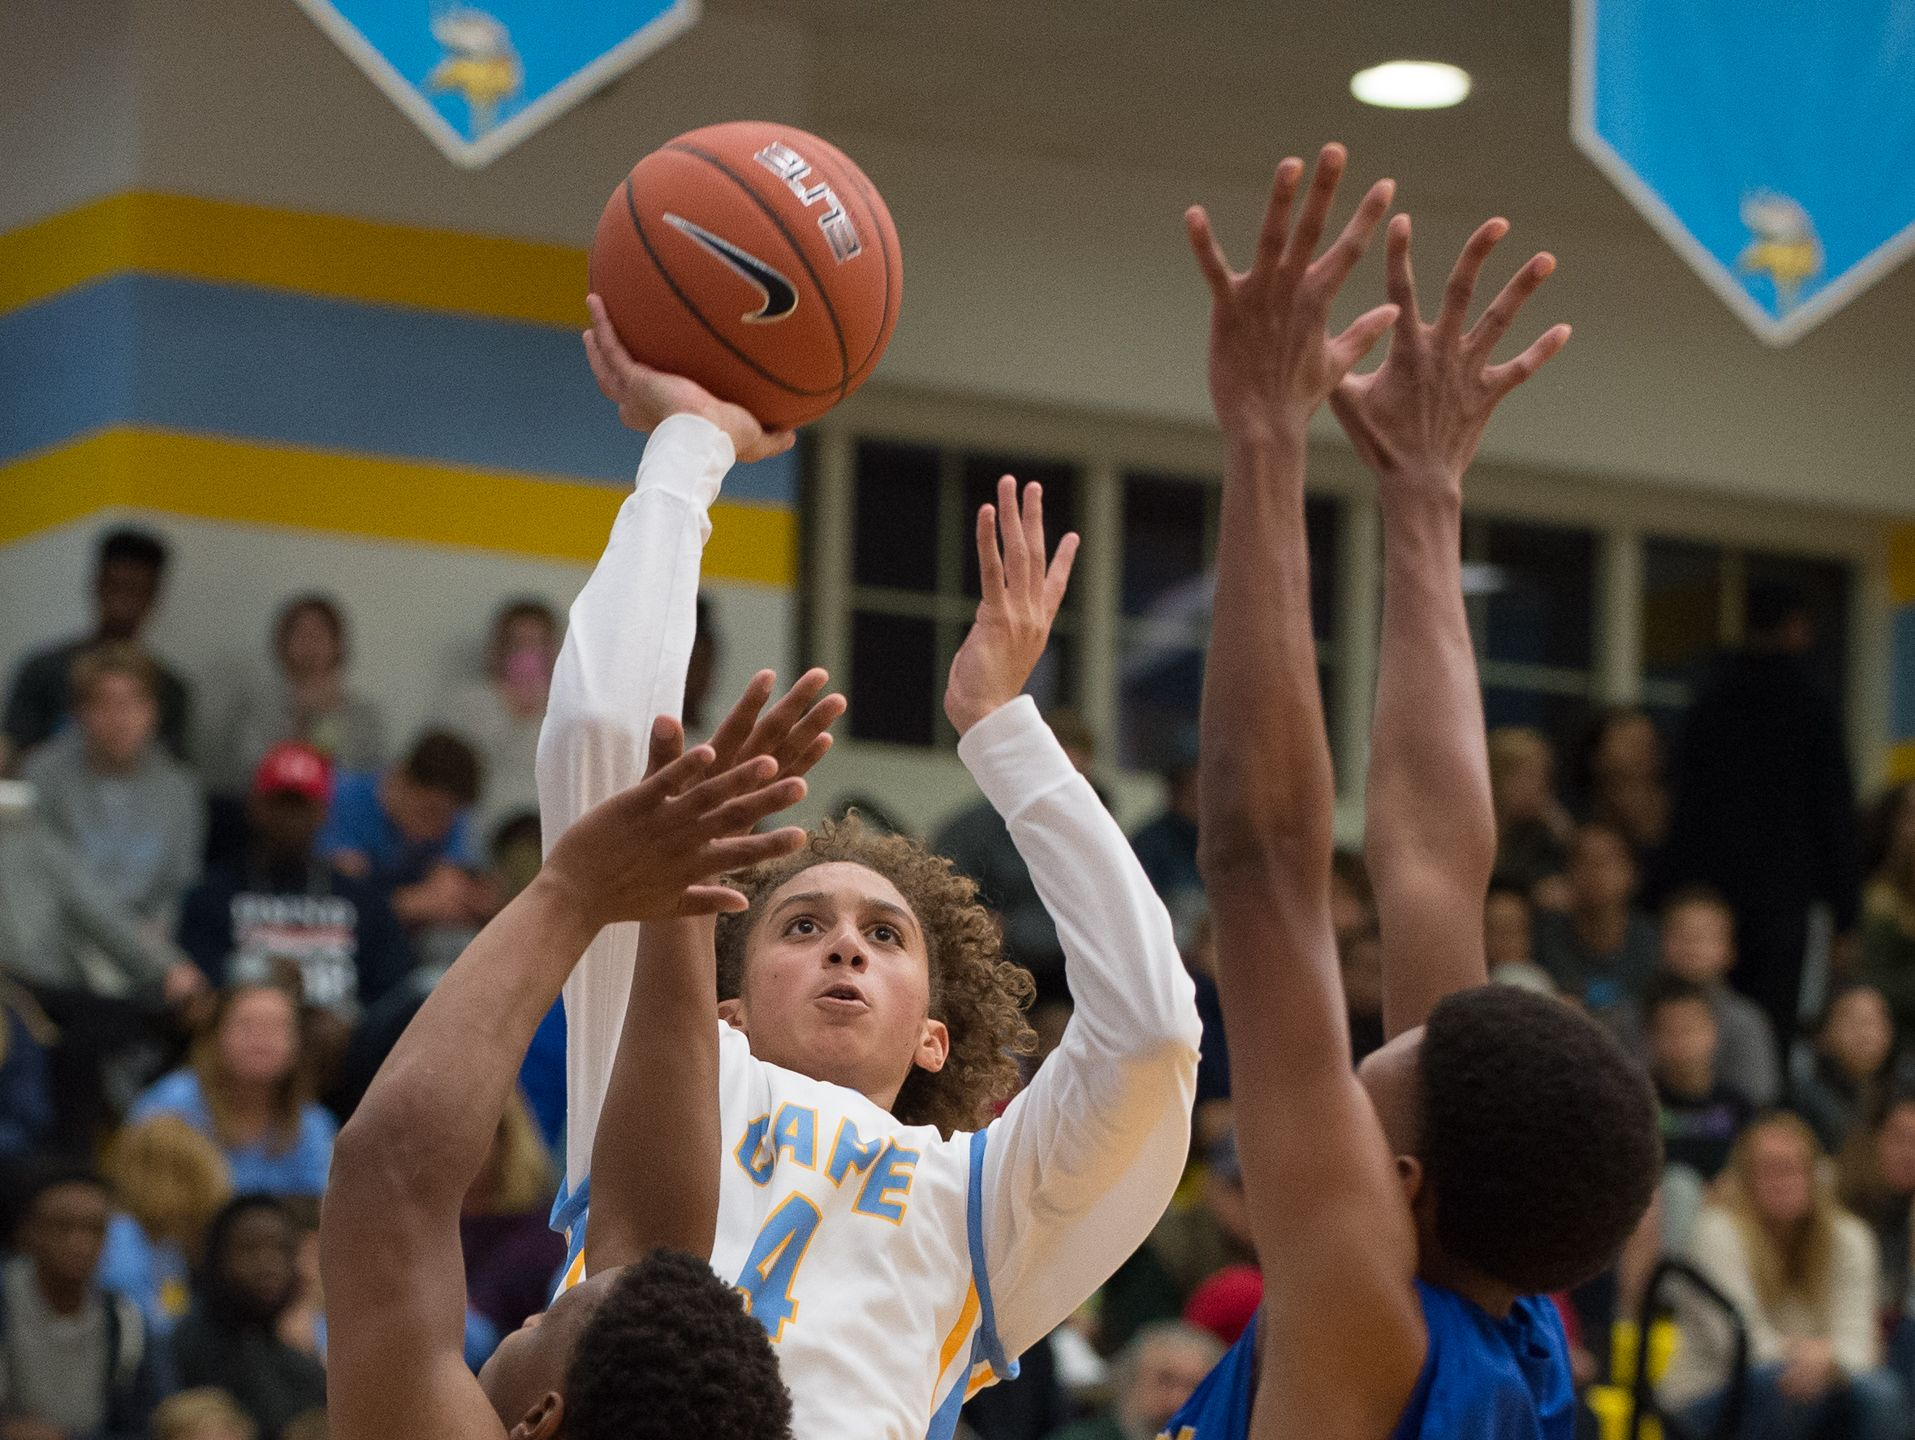 Cape Henlopen's Izaiah Dadzie (4) jumps up for a shot in their home game against Caesar Rodney.